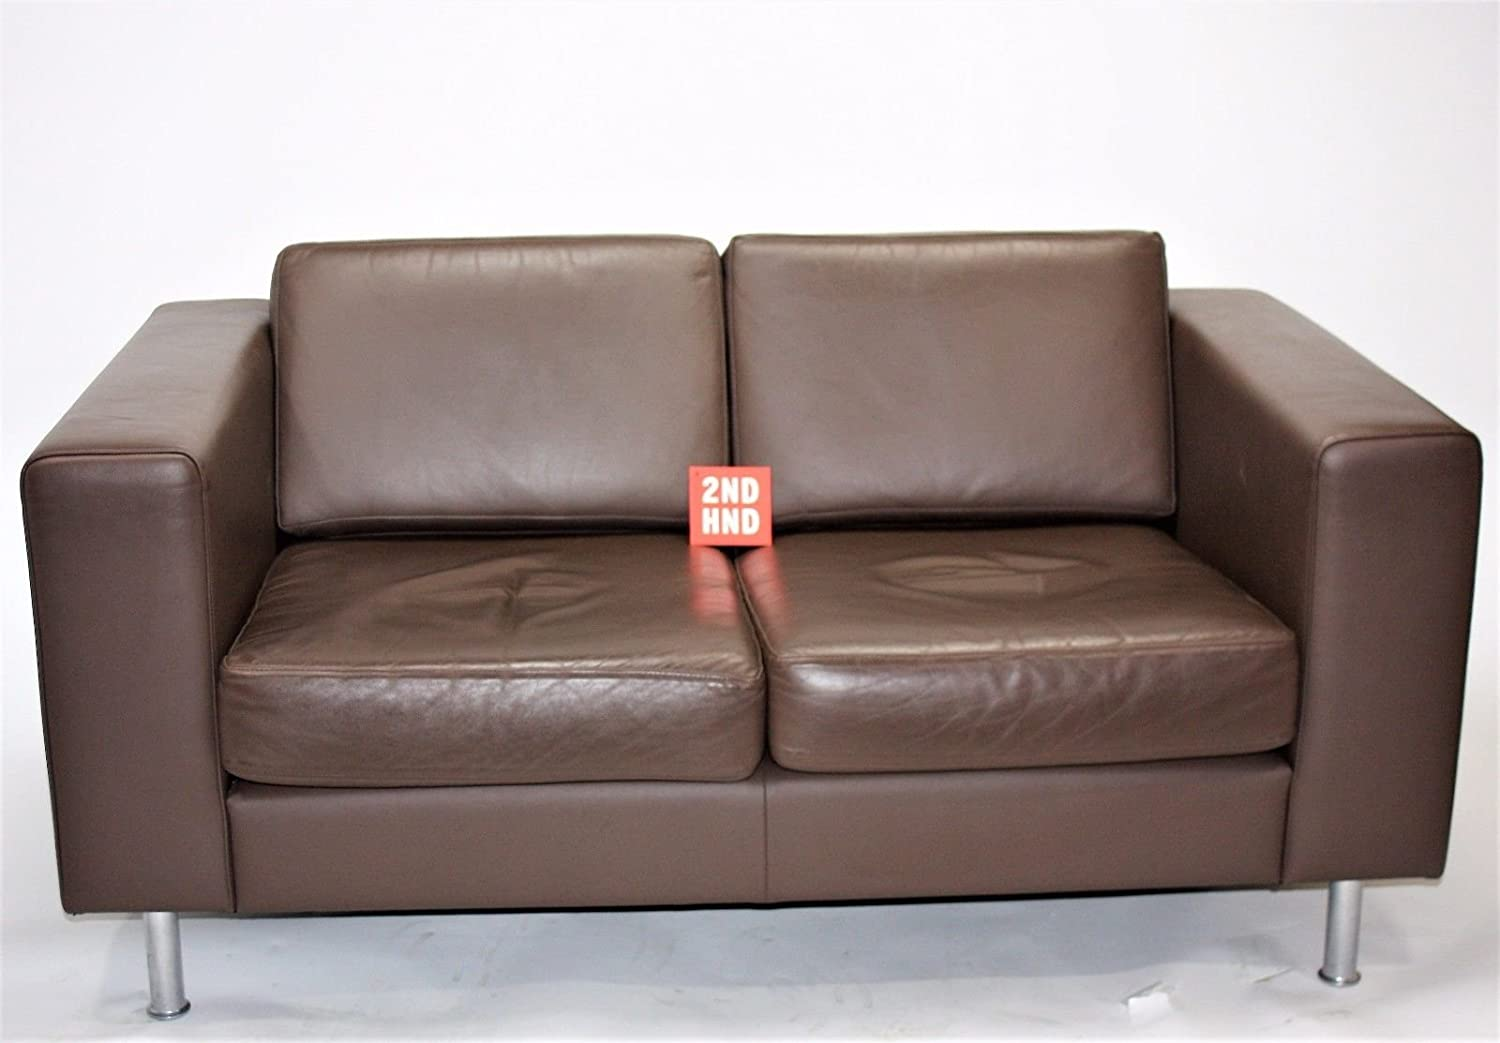 Hitch Mylius Double Seater Brown Leather Sofa: Amazon.es: Hogar